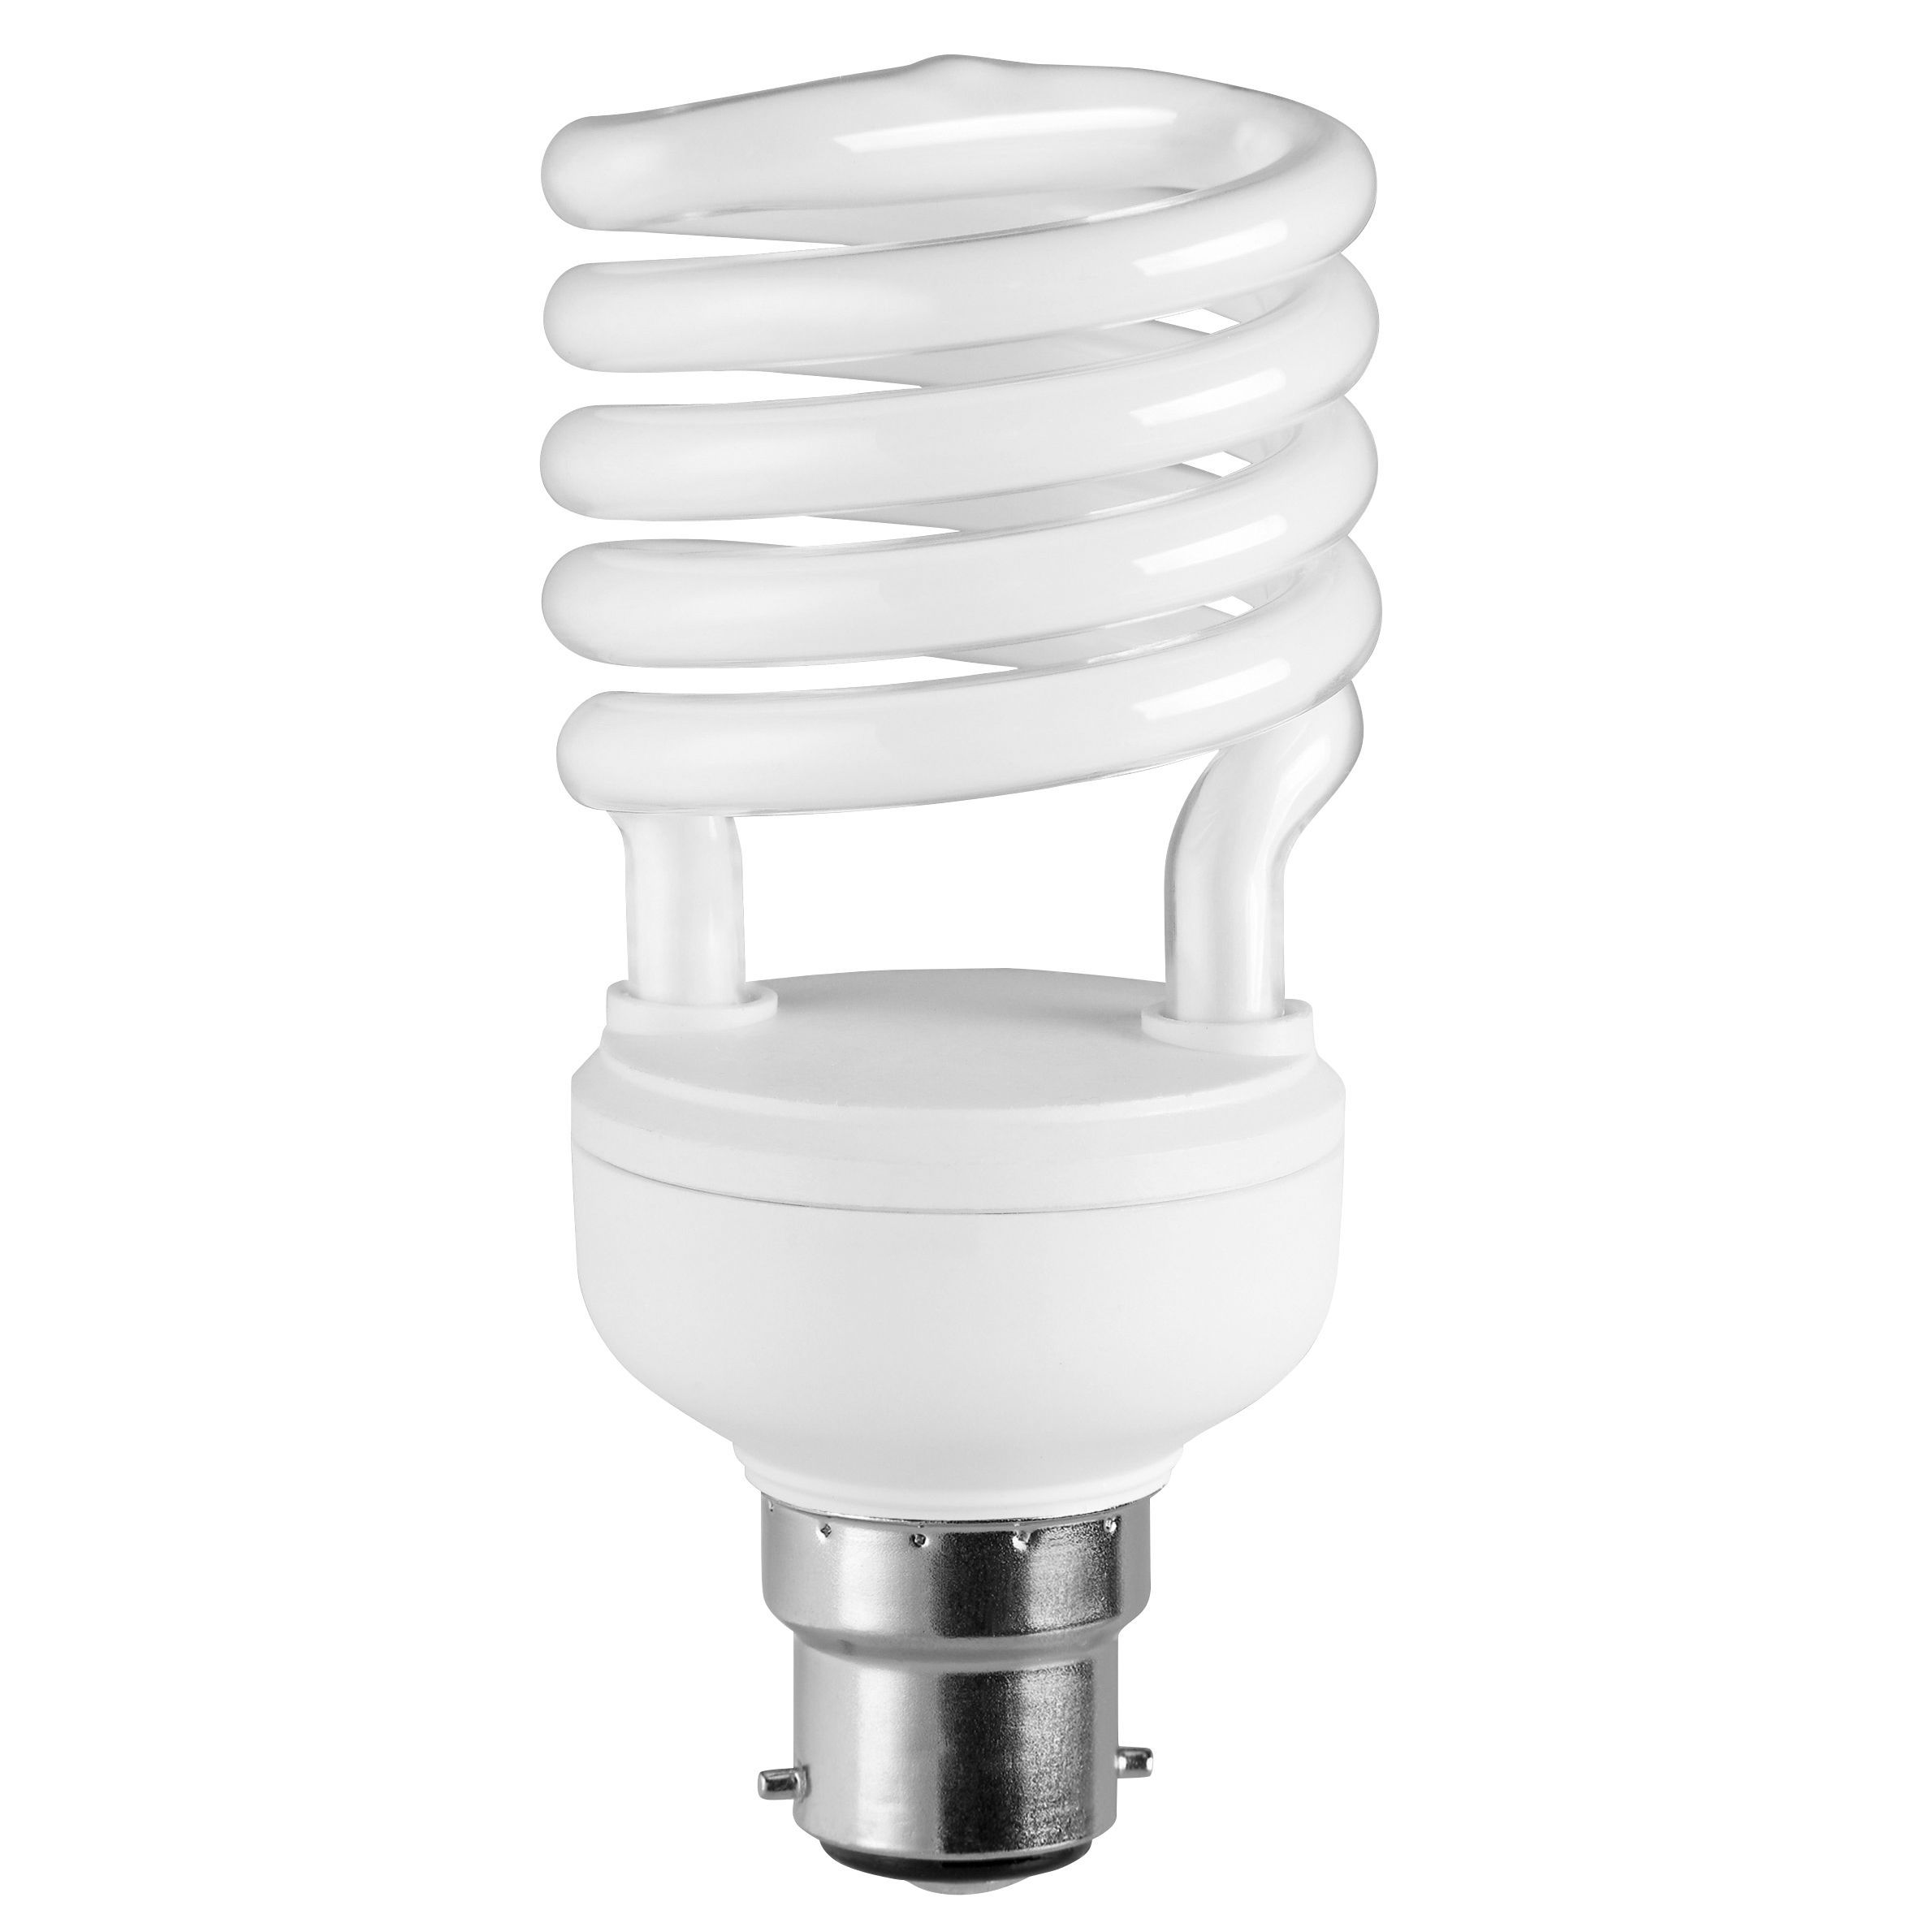 product fluorescent soft white recipeid compact id lighting bulb club w light cfl imageservice bjs profileid replacement bulbs pk sylvania undefined wholesale